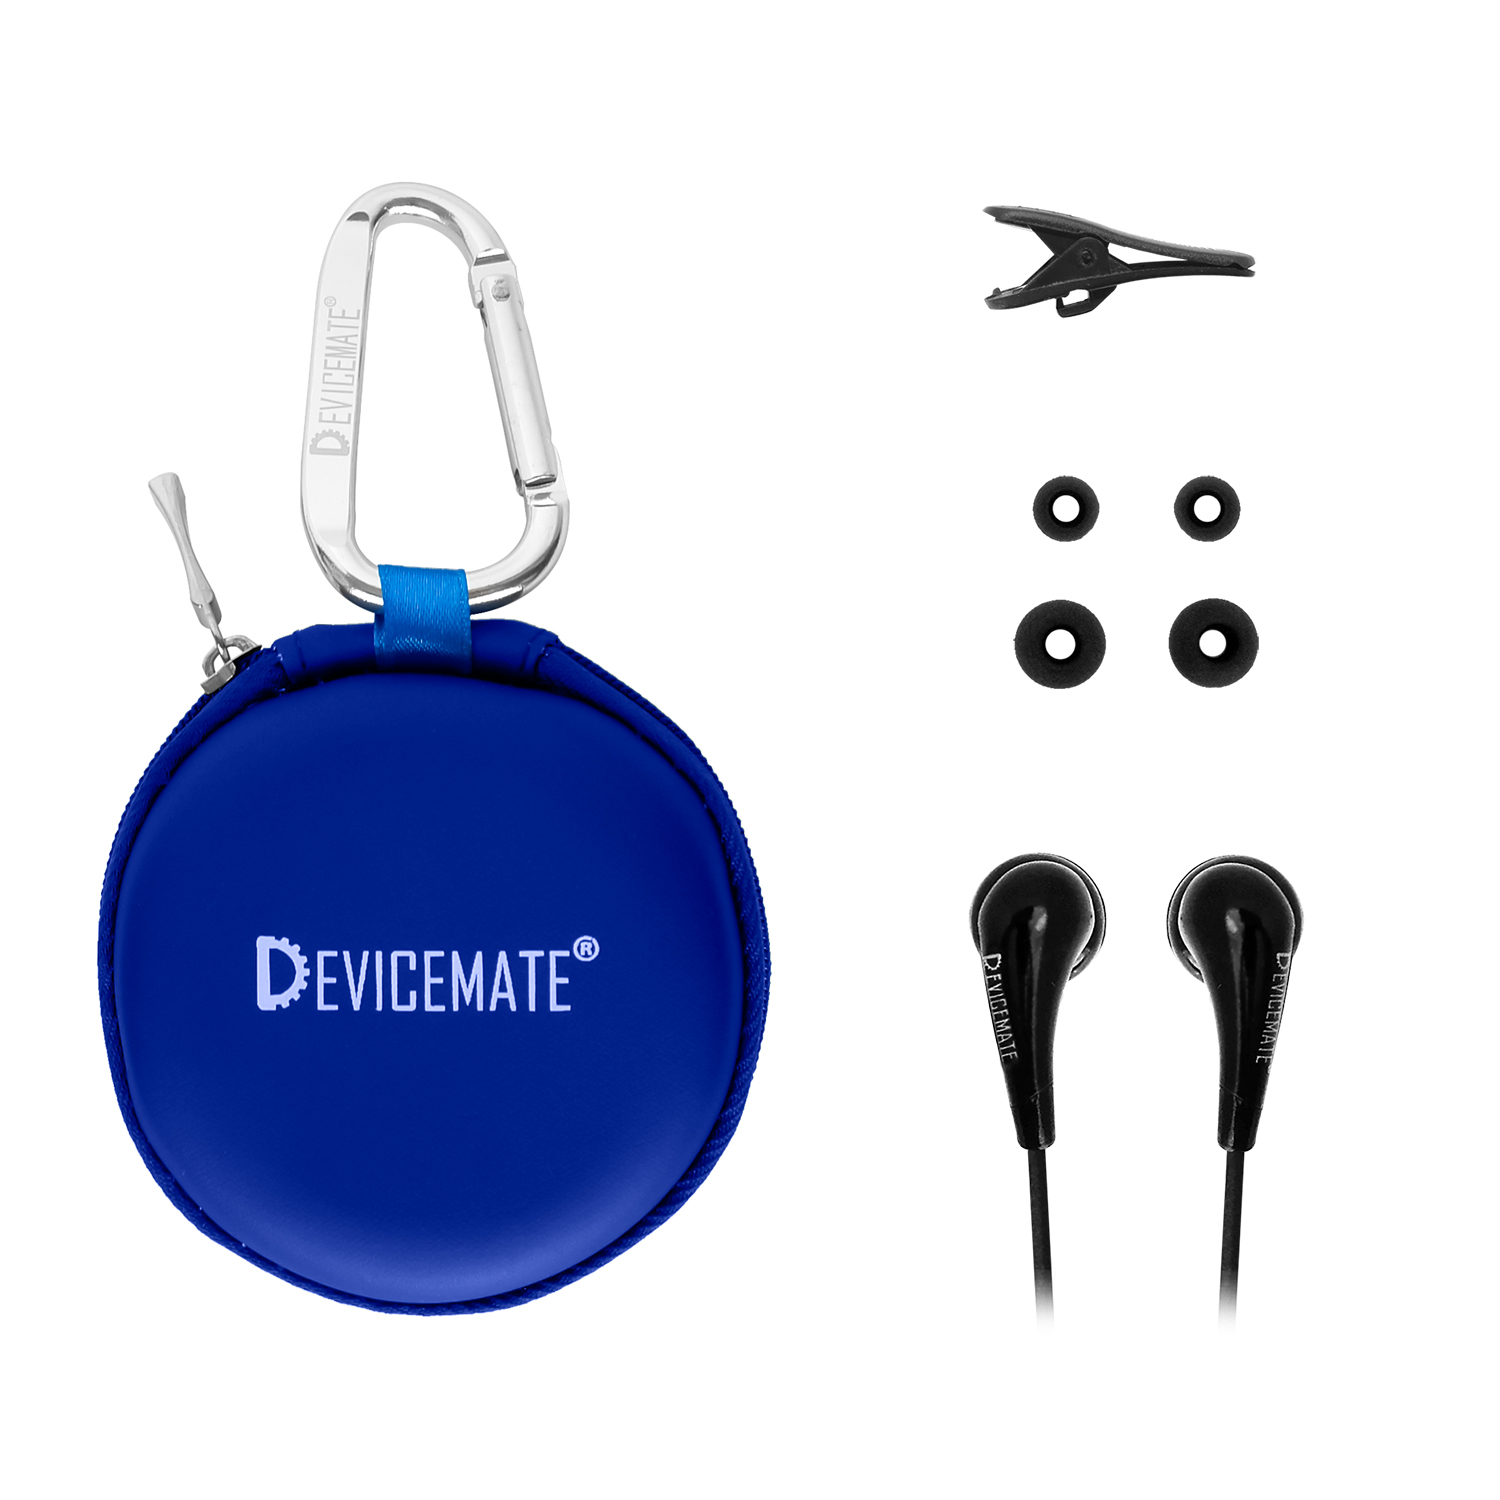 Devicemate SD 255-CTB In-Ear Stereo Earphones [Cobalt Blue] Case